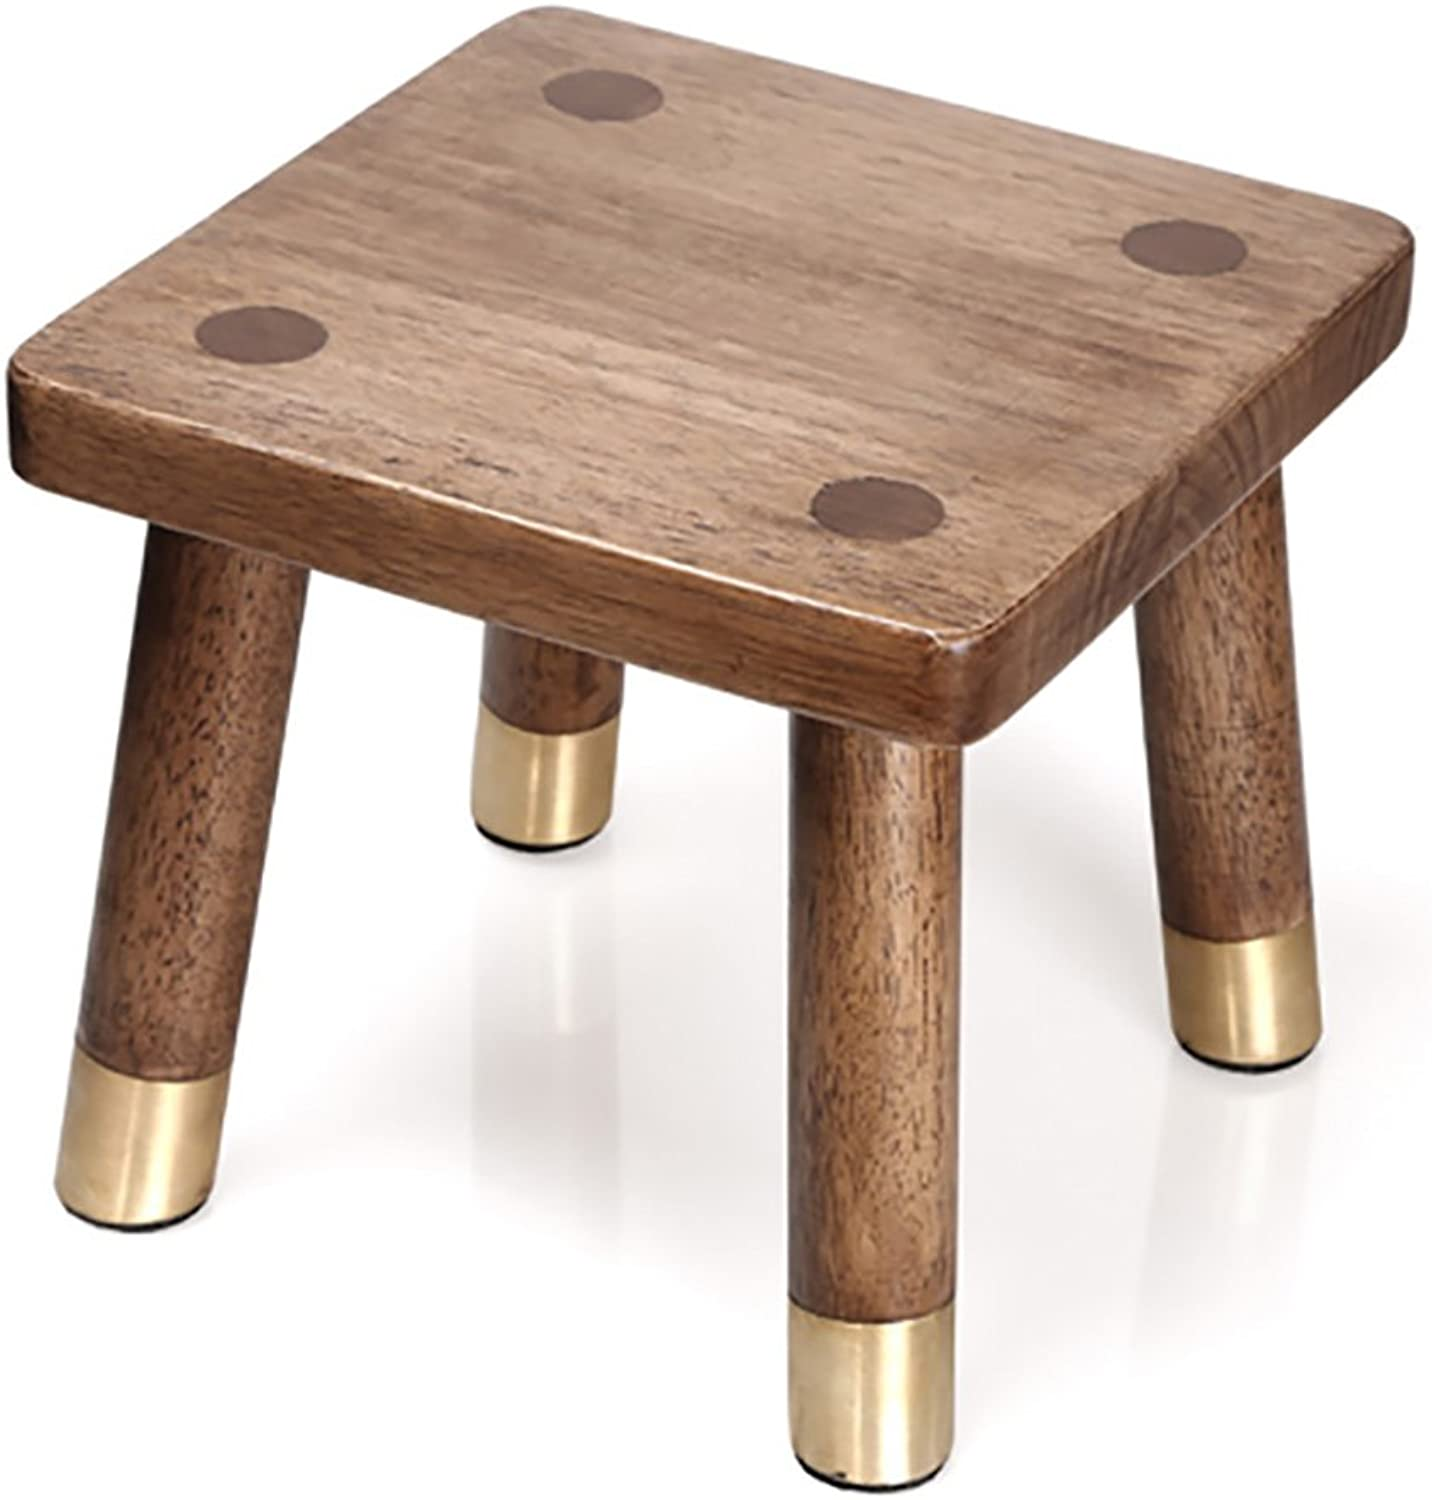 European Chair Solid Wood Small Chair, Fashion Change shoes Bench Square Stool Bathroom Stool Rubber Wood Foot Bathing Foot Stool